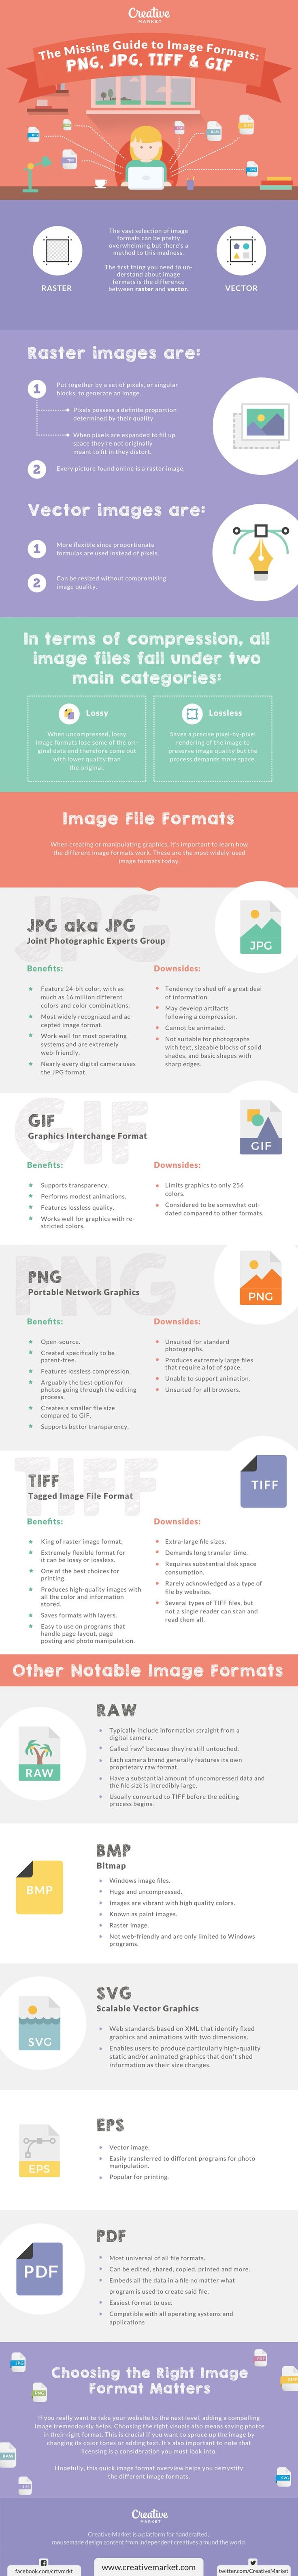 The Missing Guide To Image Formats: PNG, JPG, TIFF & GIF - #infographic